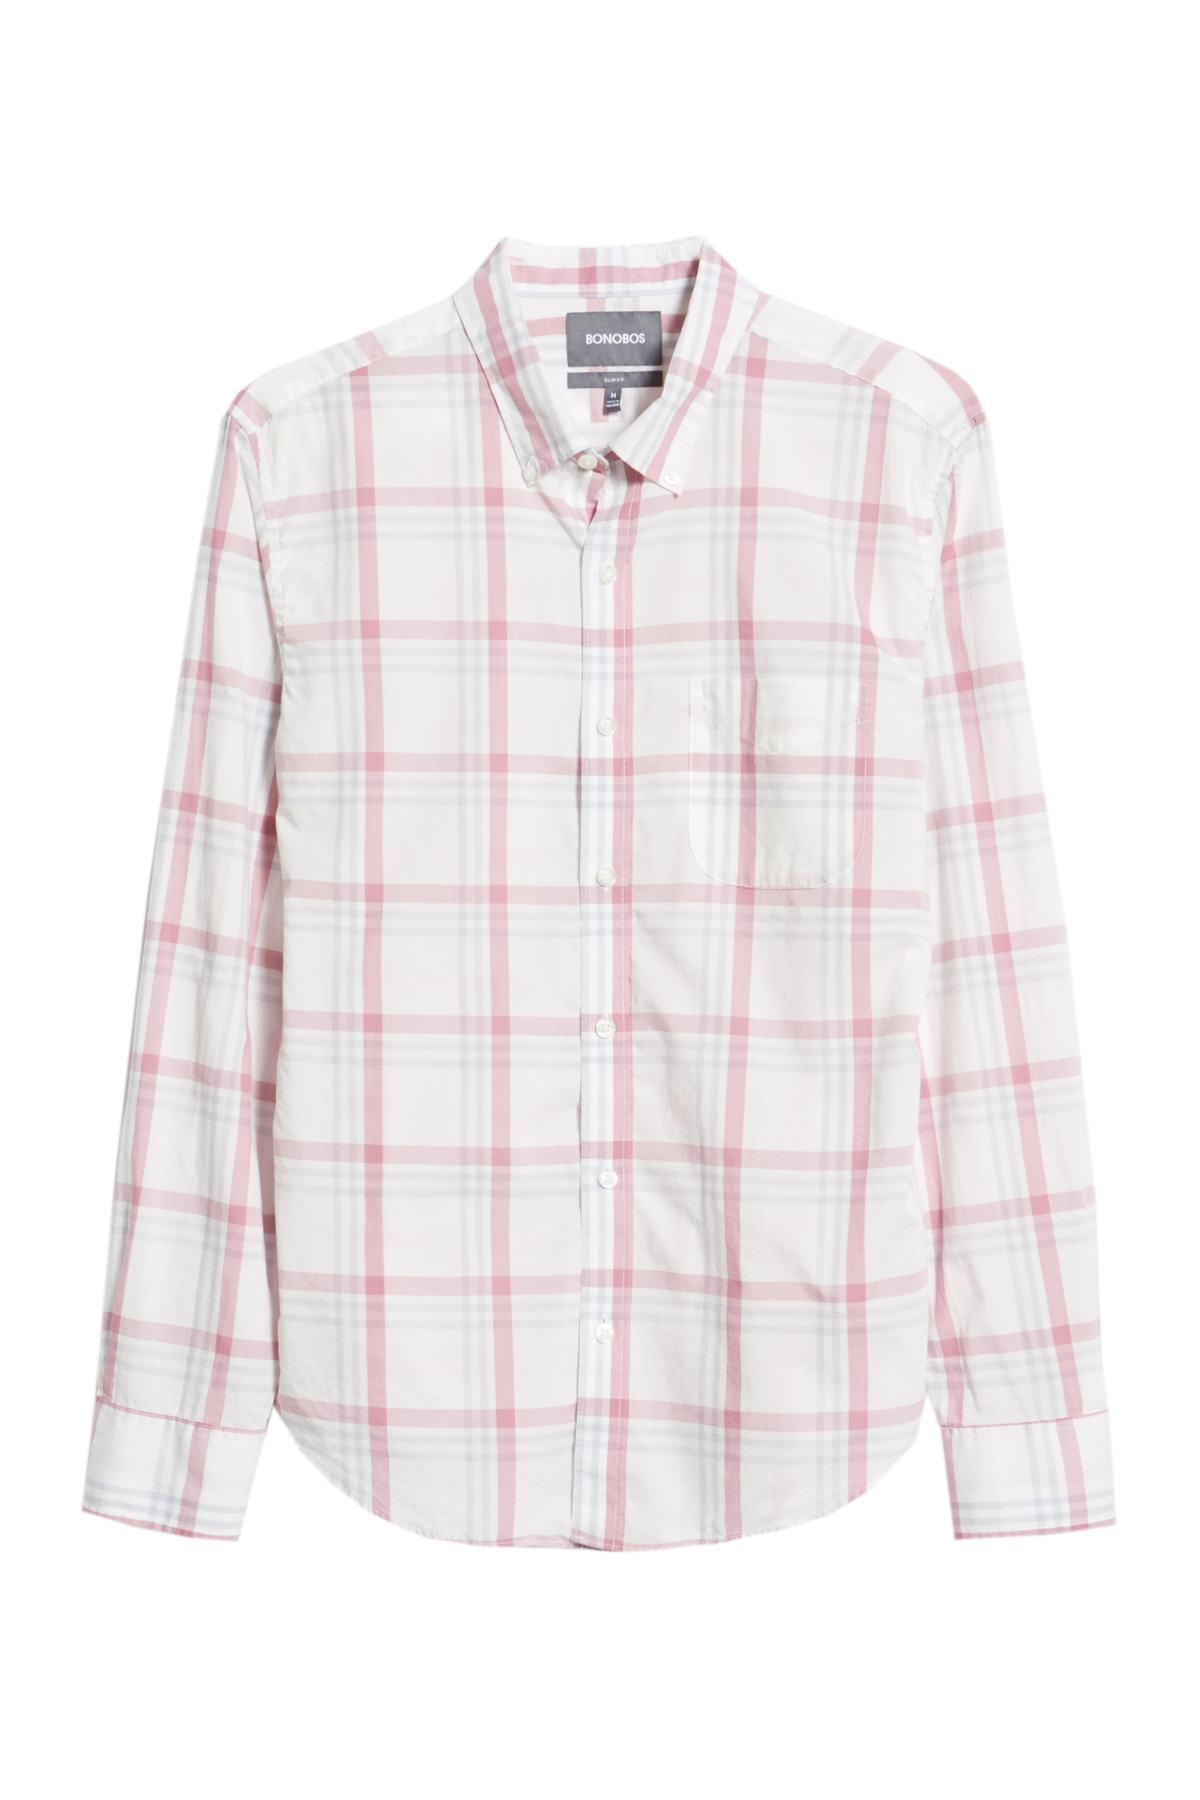 f36dfb332fd Lyst - Bonobos Summerweight Slim Fit Plaid Sport Shirt in Pink for Men